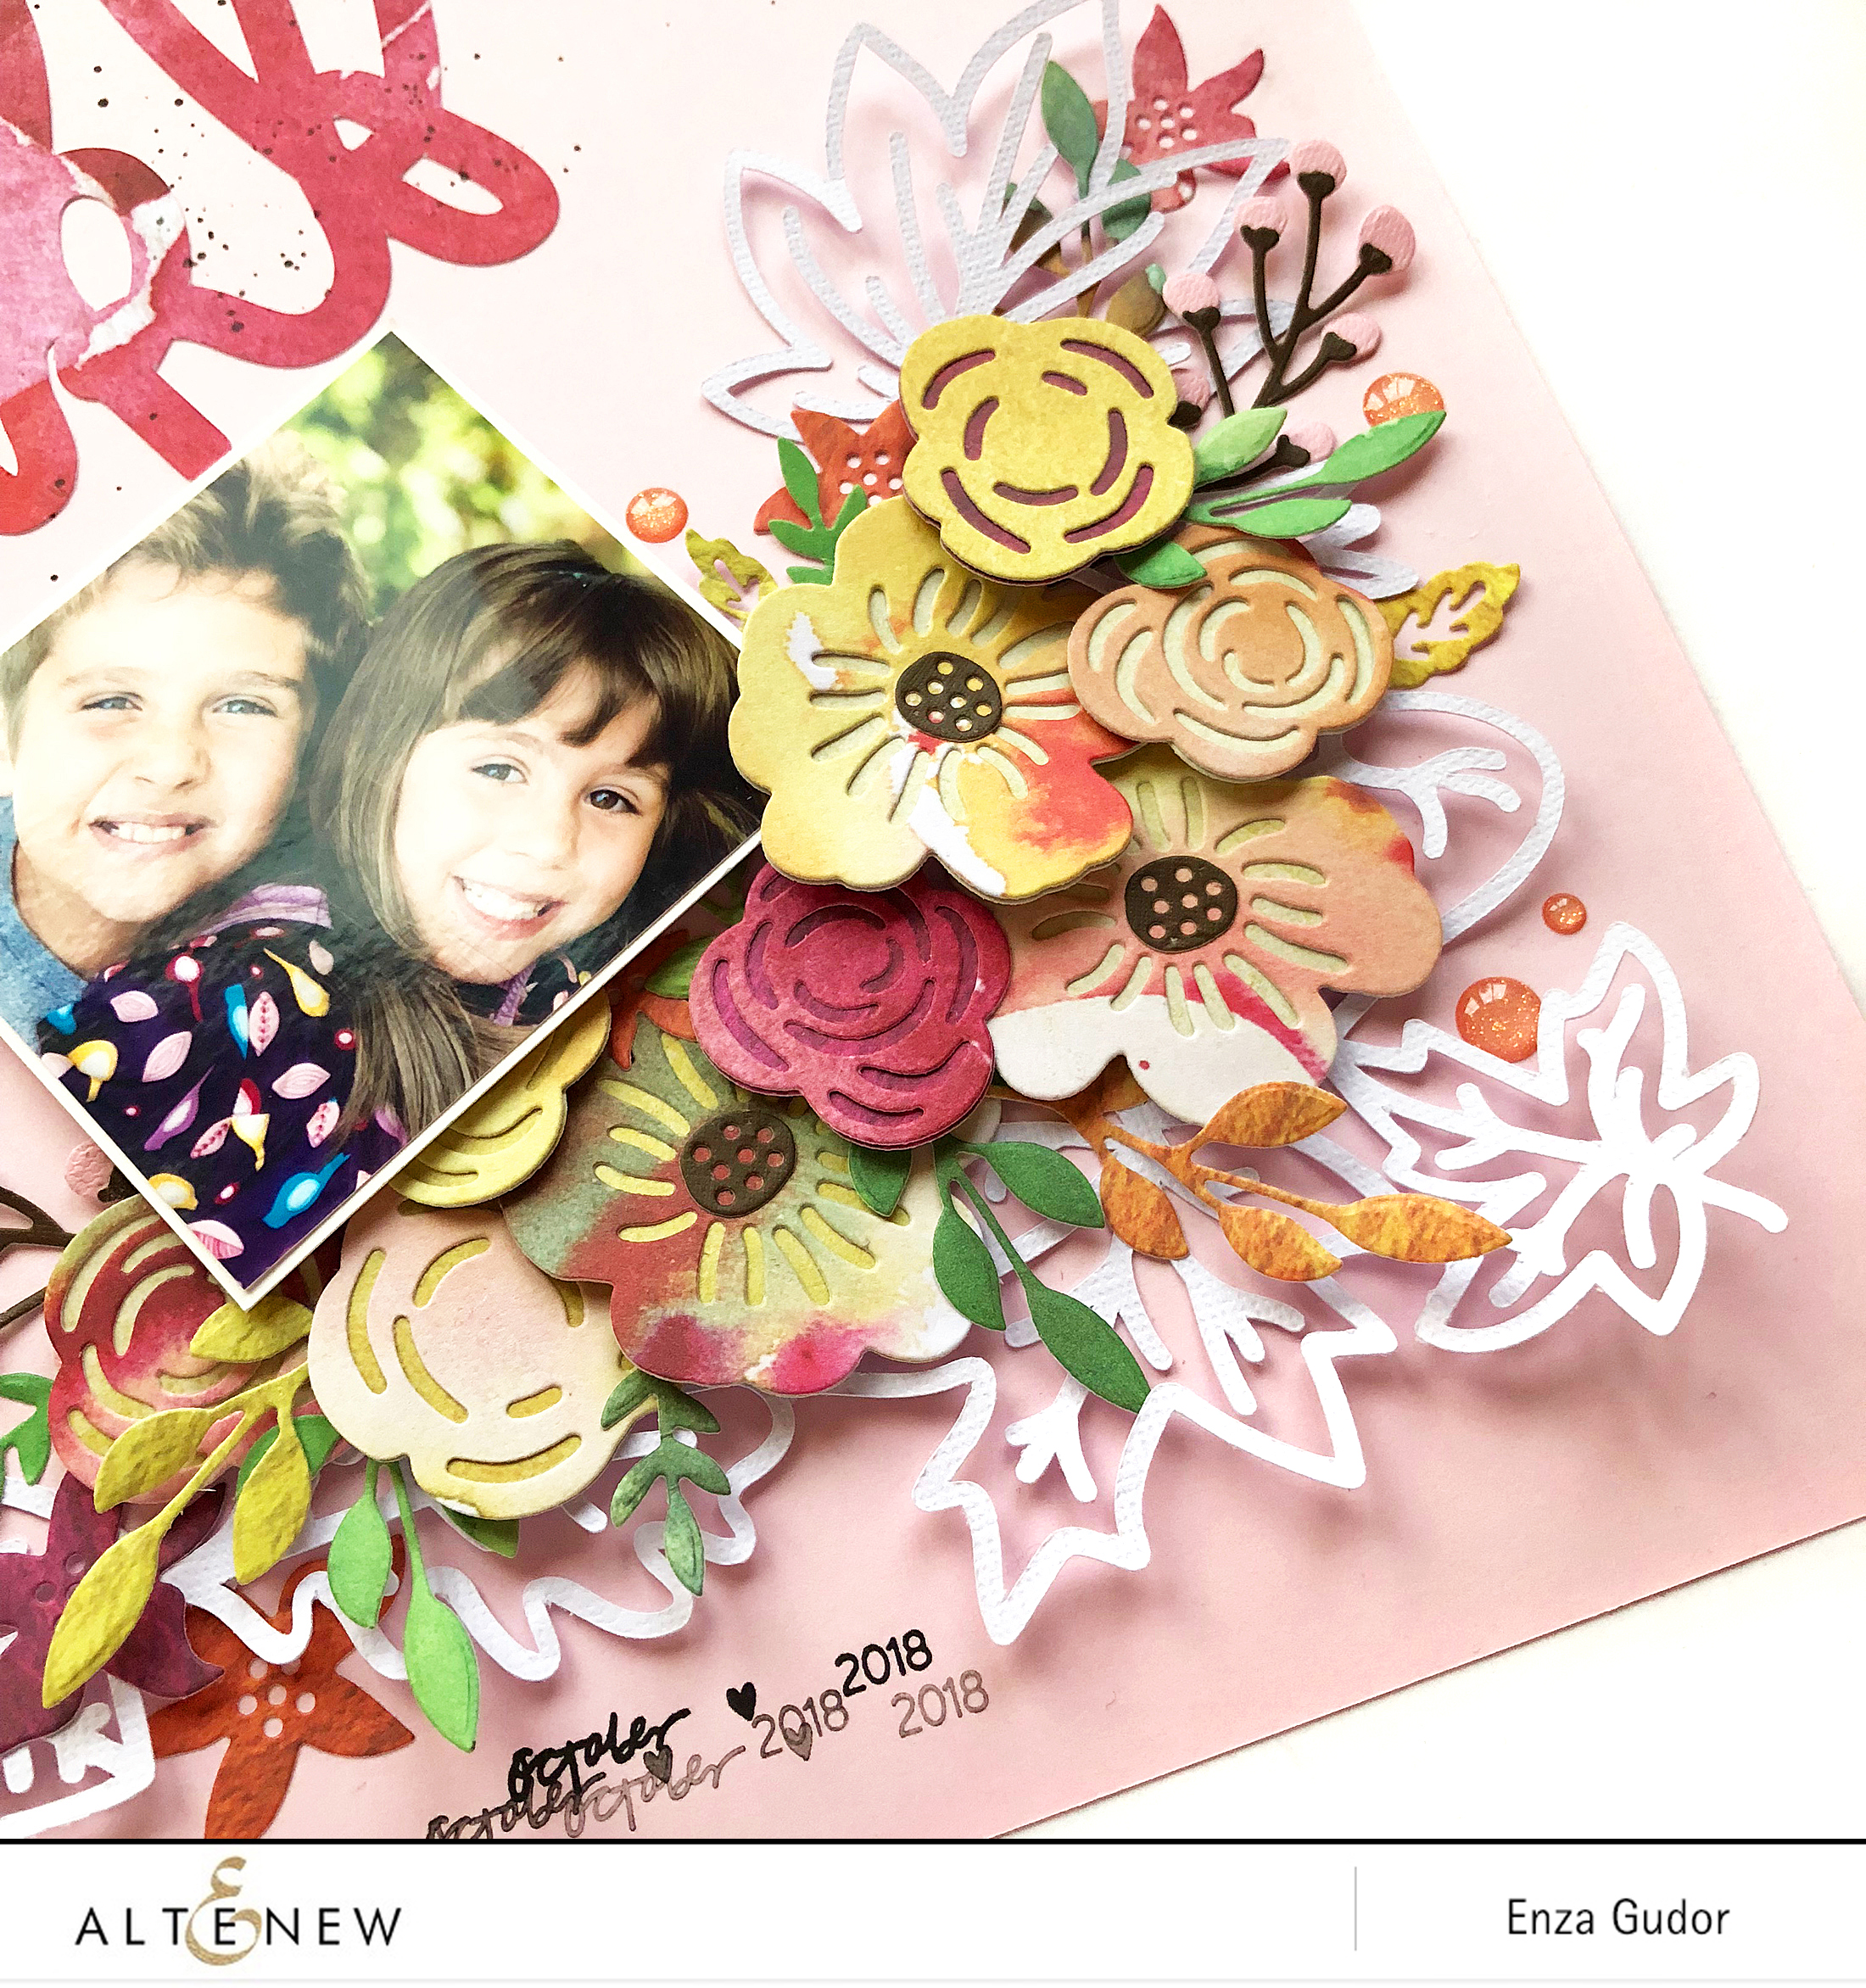 Layout by @enzamg for @altenew using the Layered Floral Elements Die set. #altenew #diecutting #scrapbooking